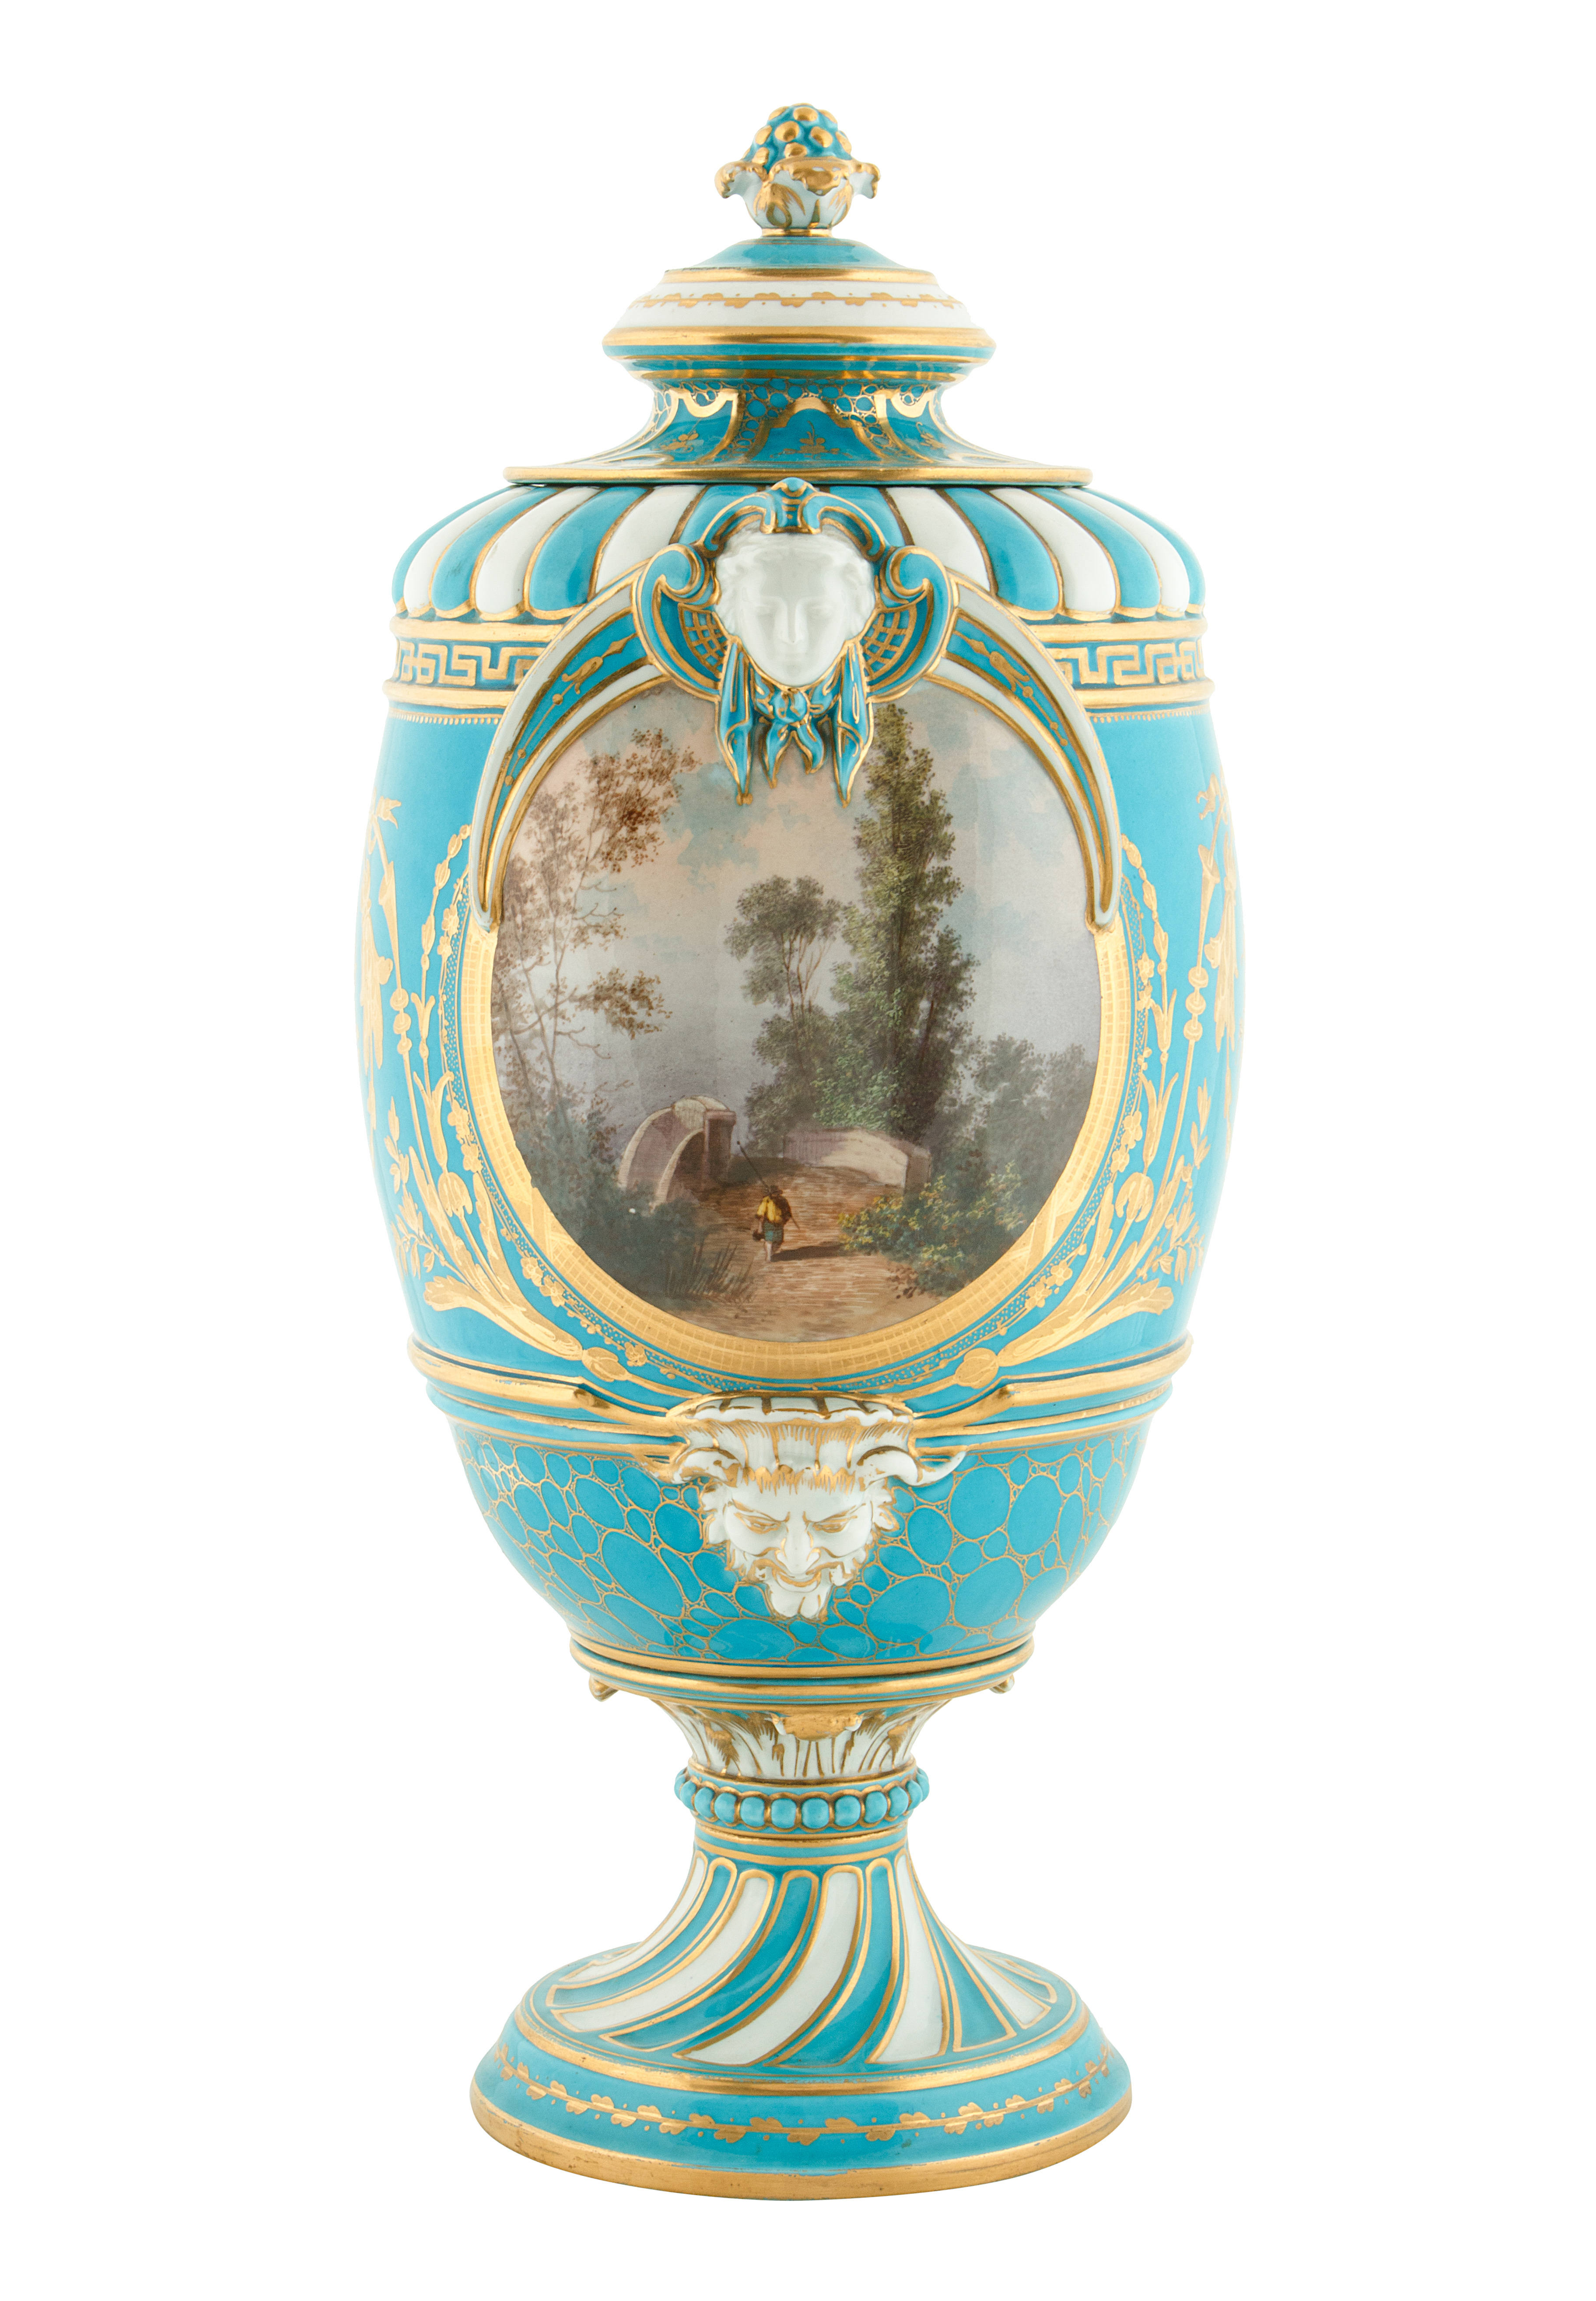 19TH CENTURY FRENCH SEVRE-STYLE PORCELAIN URNS - Image 3 of 6